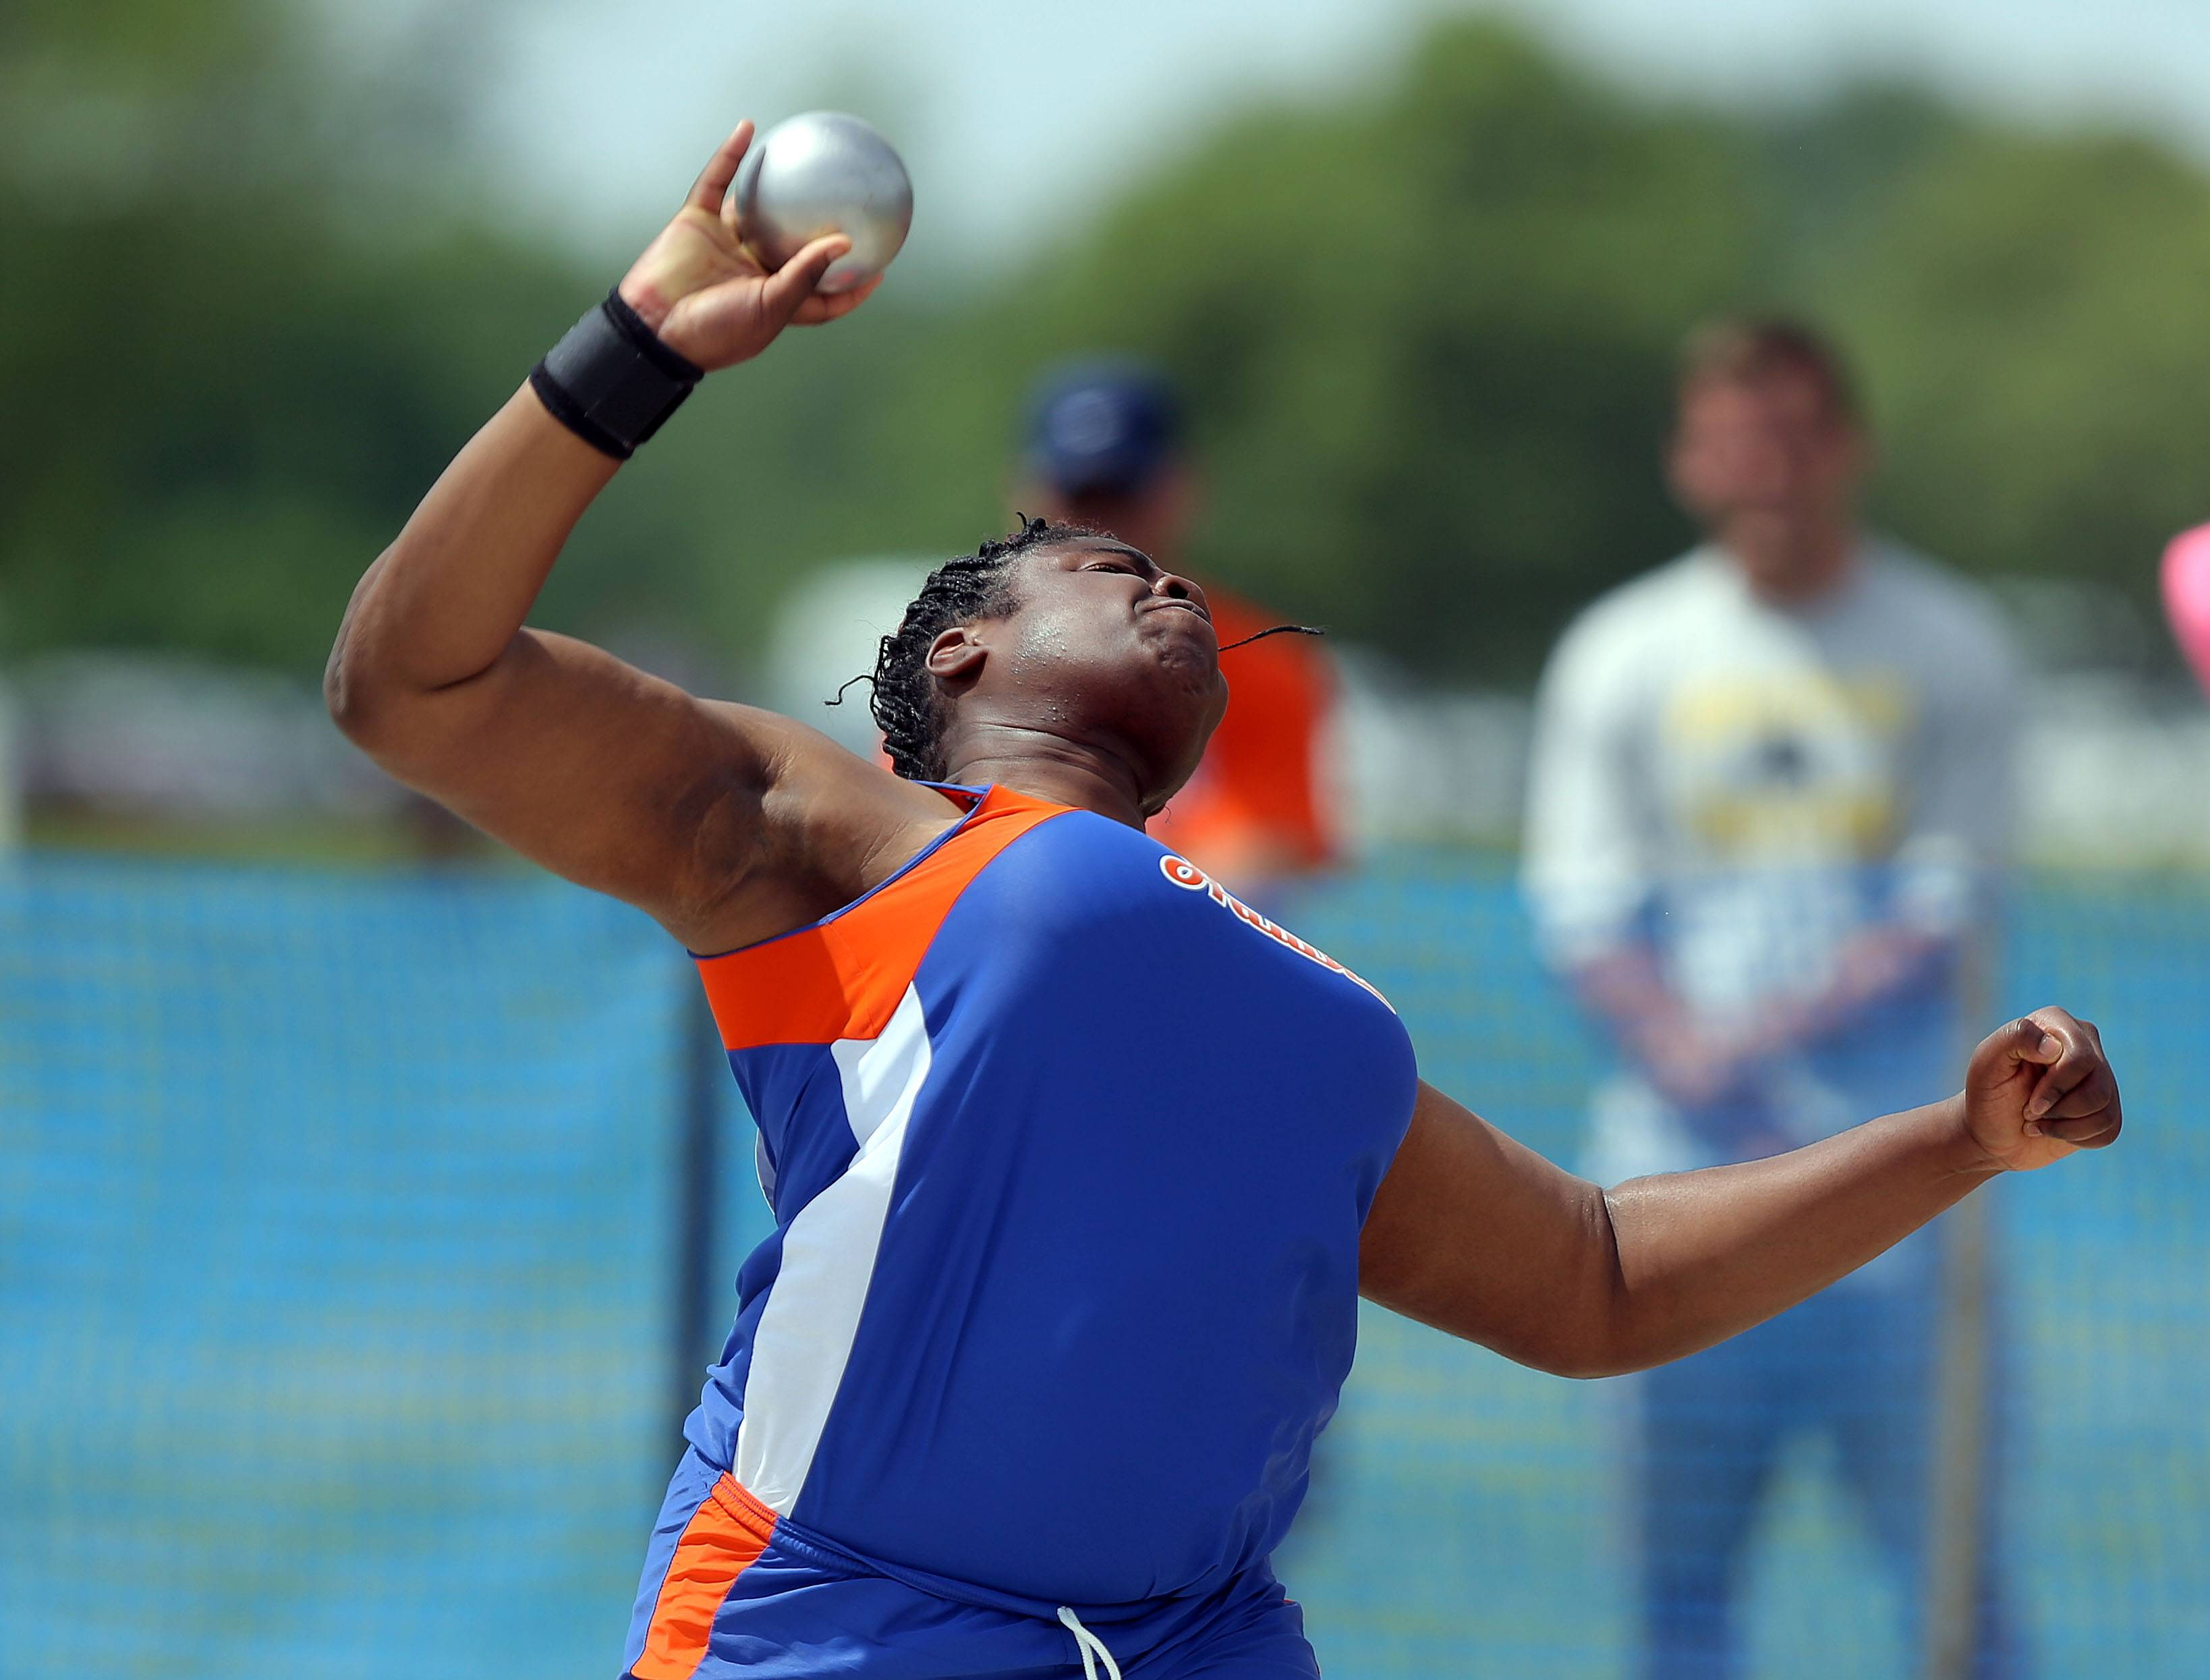 Hoffman Estates' Banke Oginni competes in the class 3A shot put during the girls track and field state finals at Eastern Illinois University in Charleston Saturday.